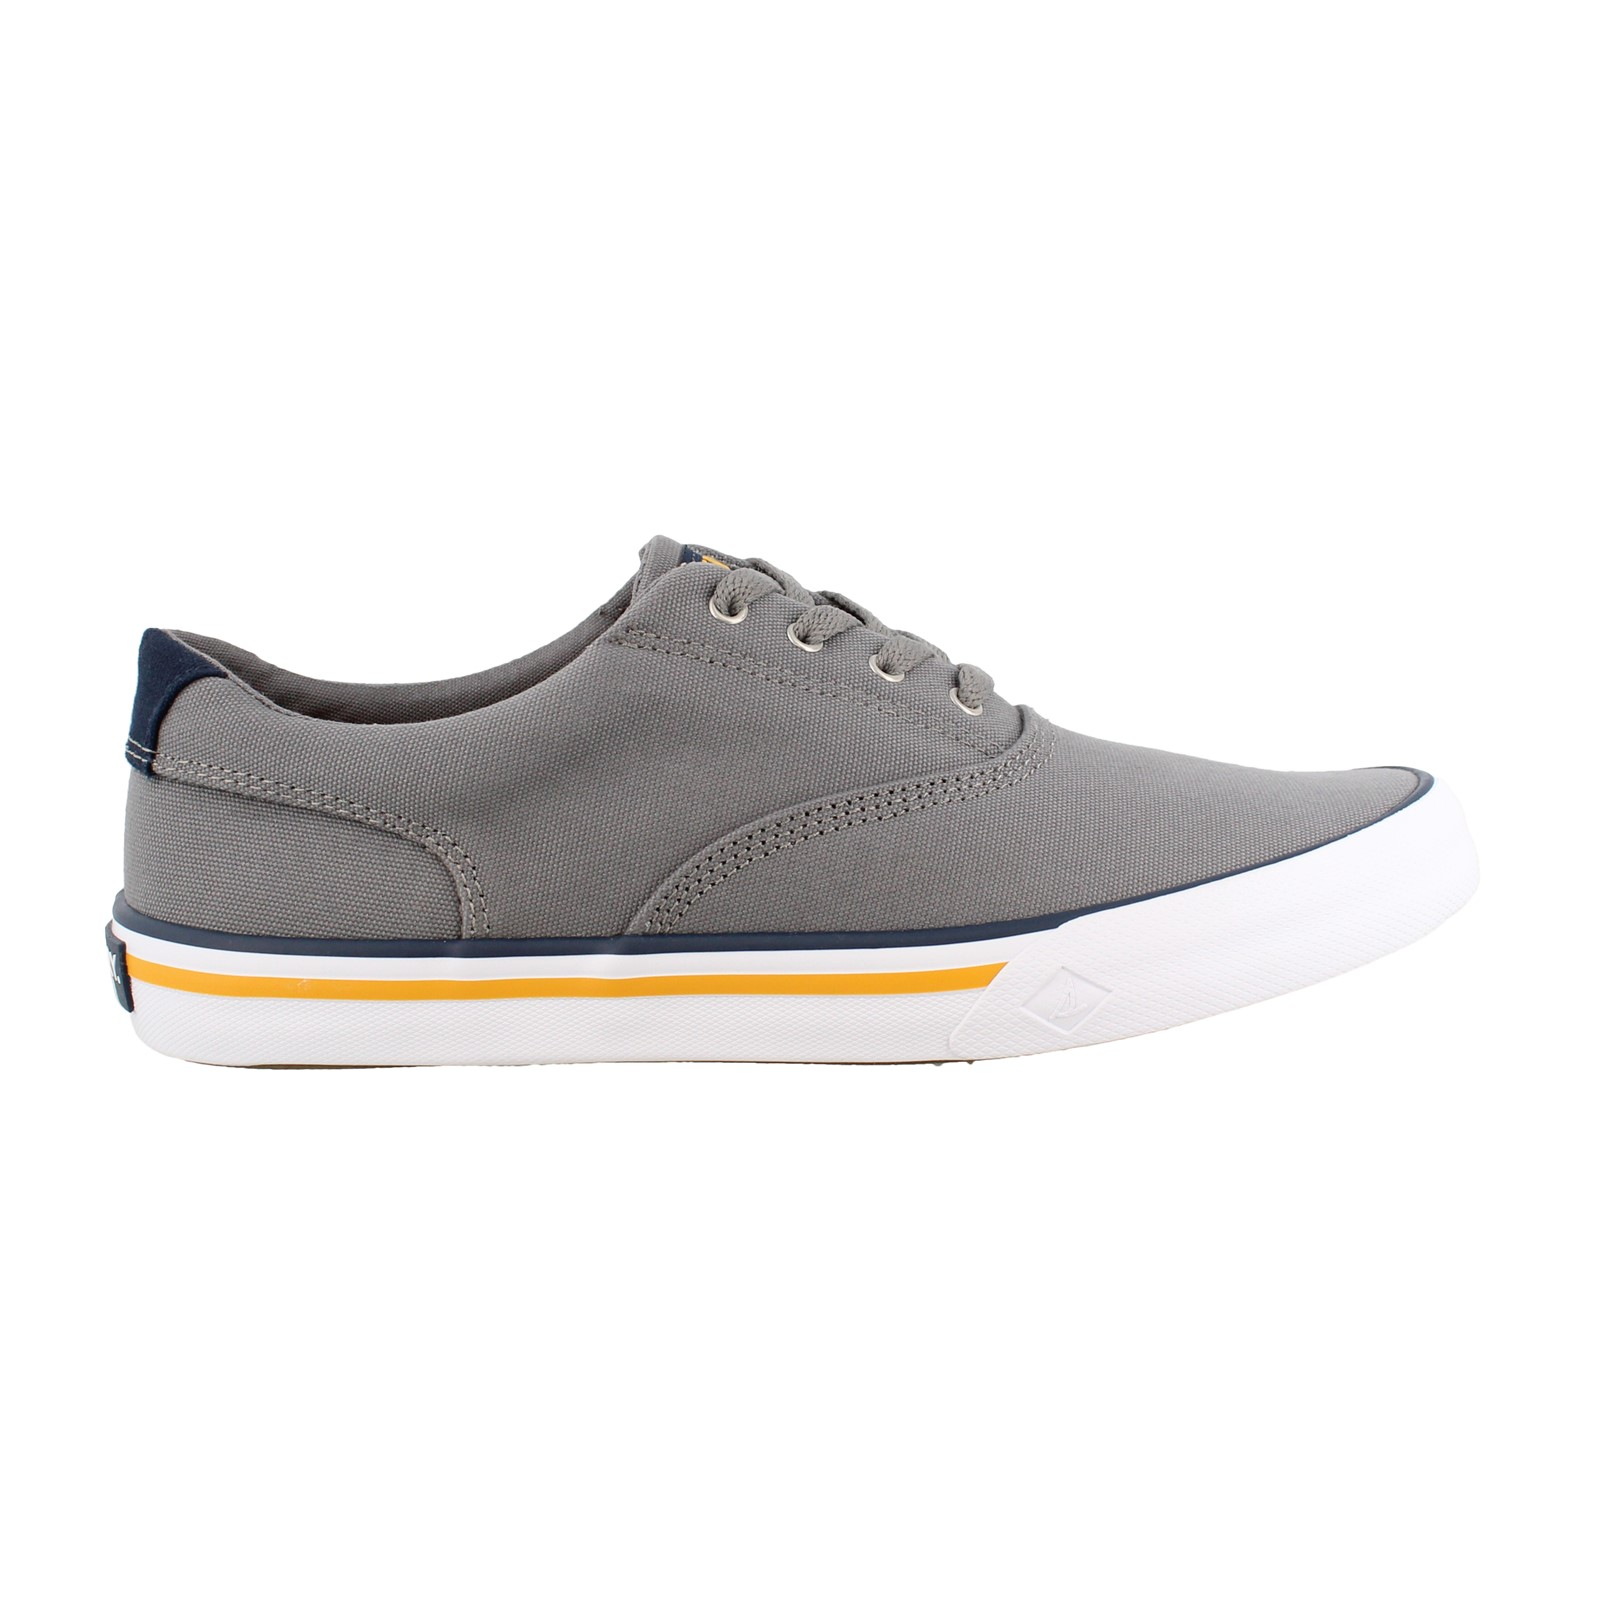 Men's Sperry, Striper II CVO Lace up Shoes